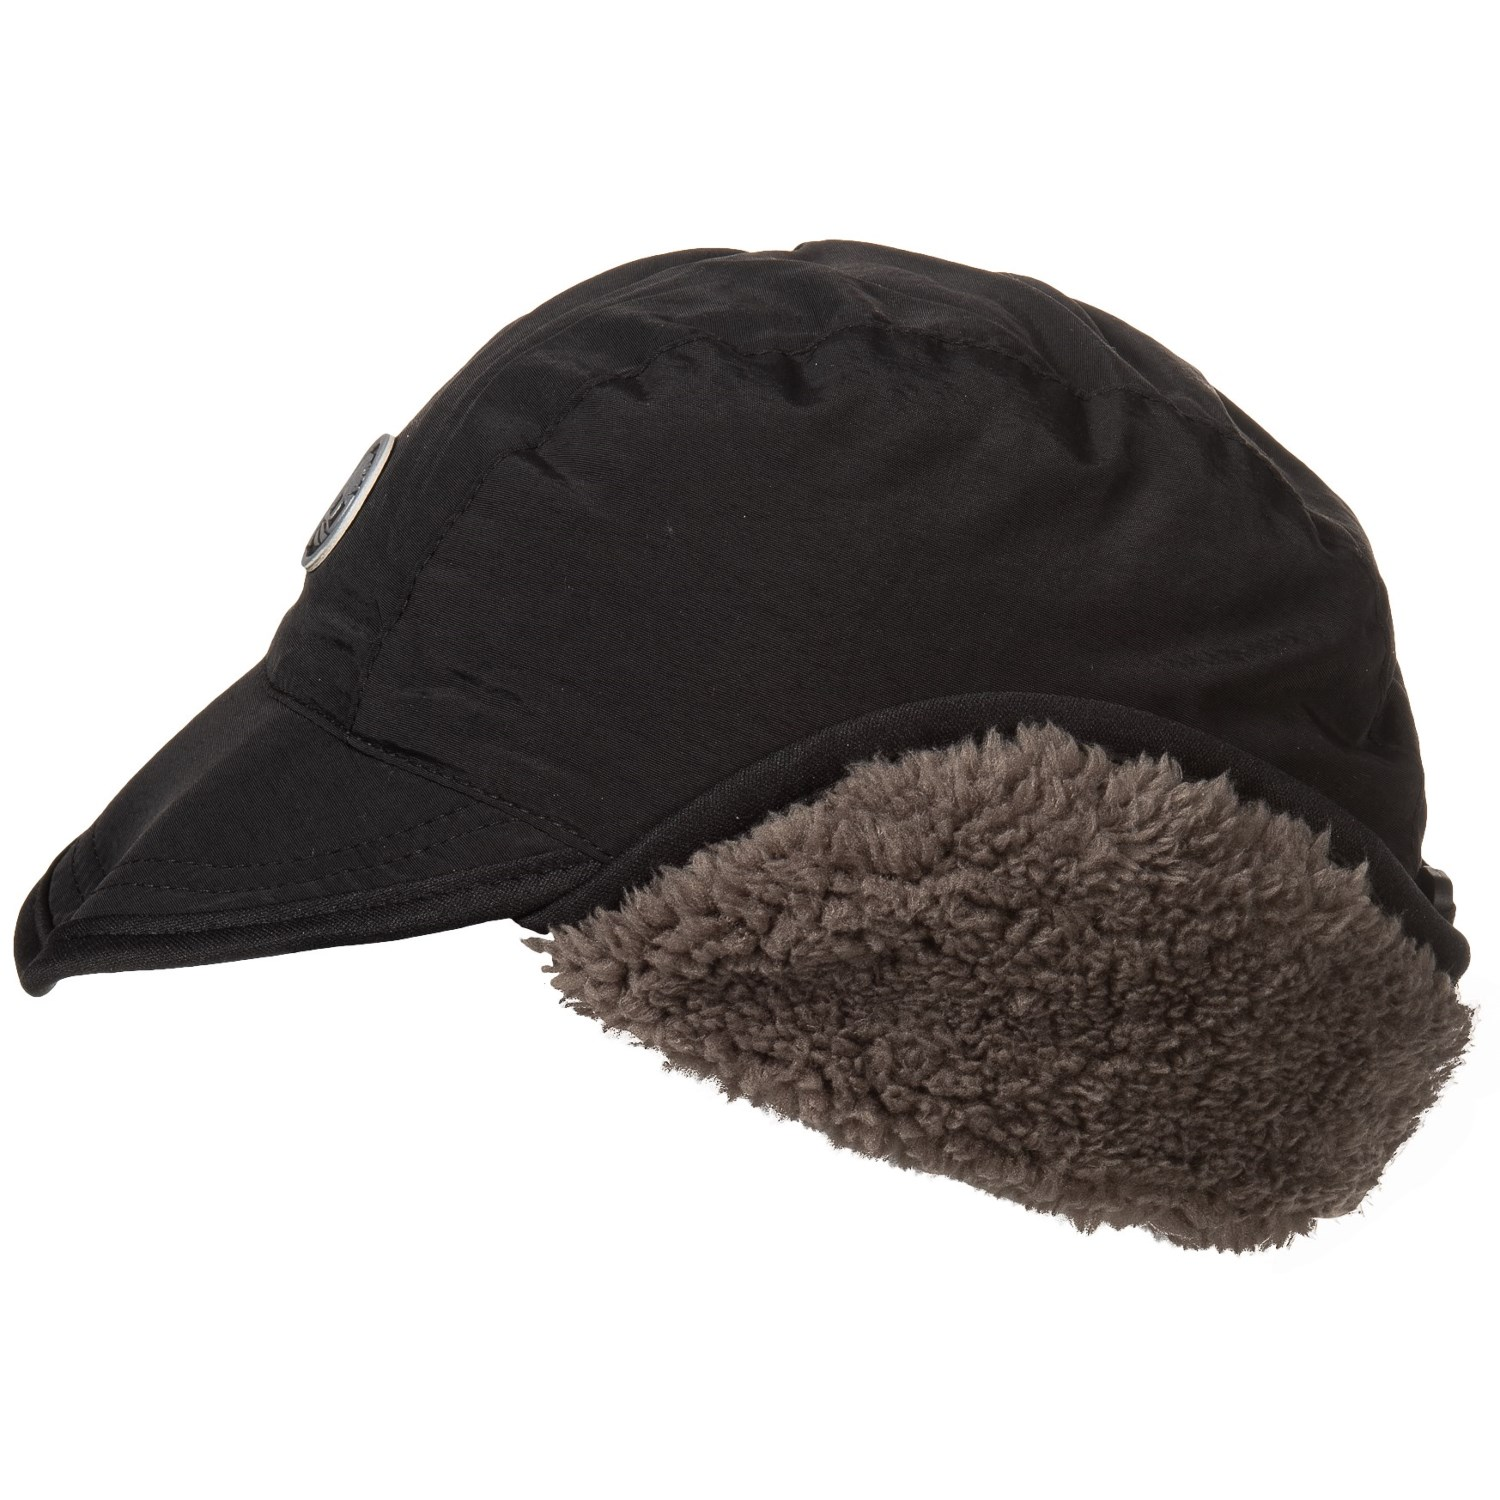 2f1ac8a8035cb Timberland Outdoor Brim Hat - Faux-Fur Lined (For Men)